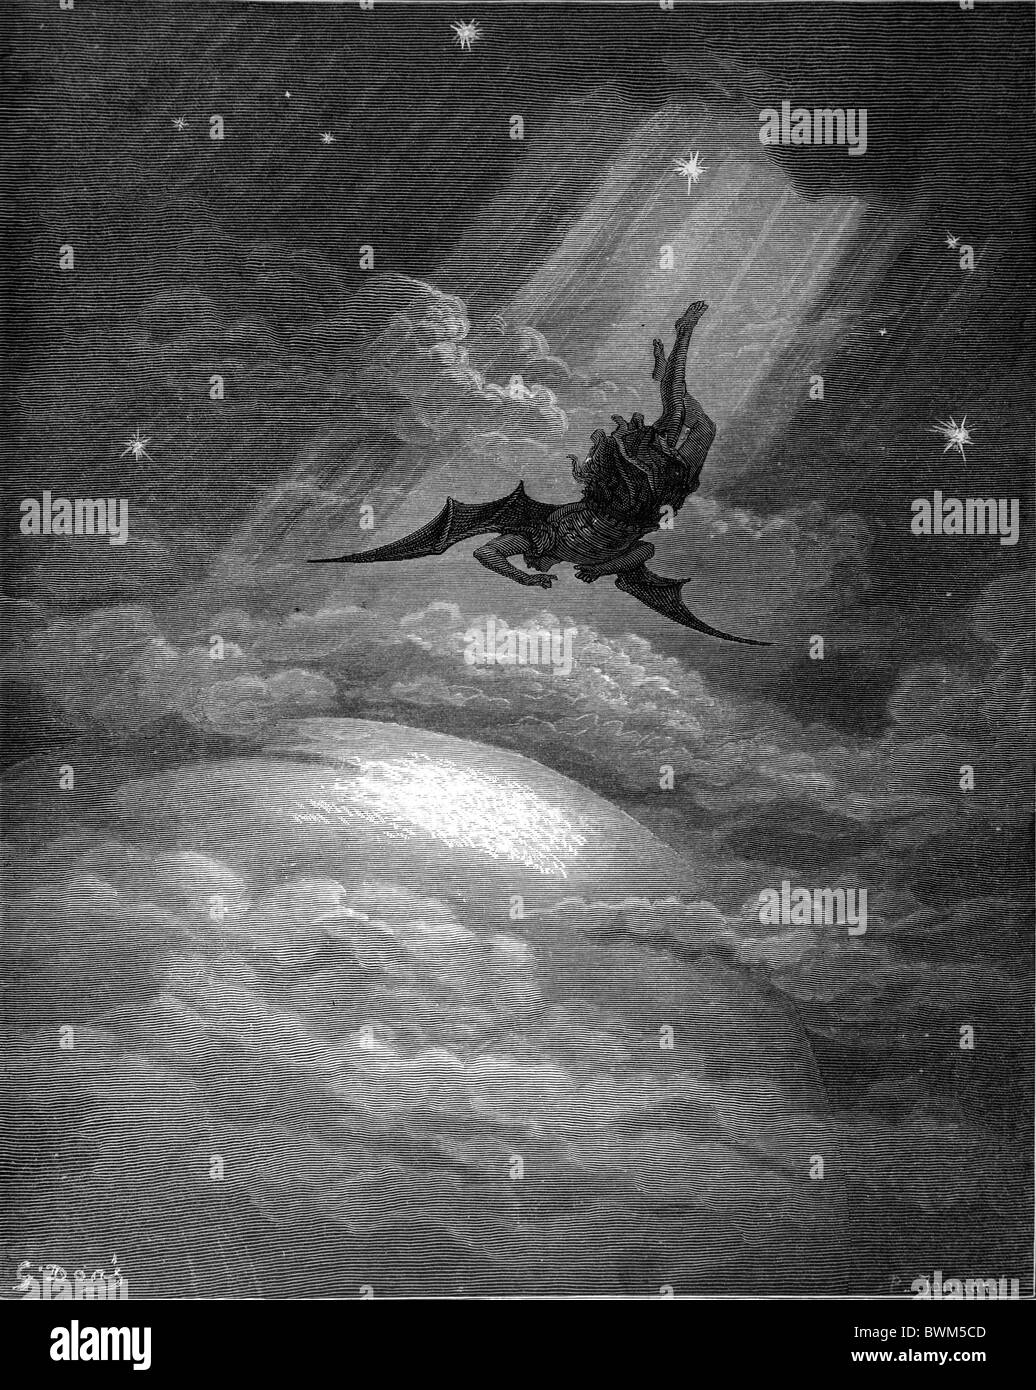 Gustave Doré; Black and White Engraving; Satan Approaching the Confines of the Earth from John Milton's - Stock Image